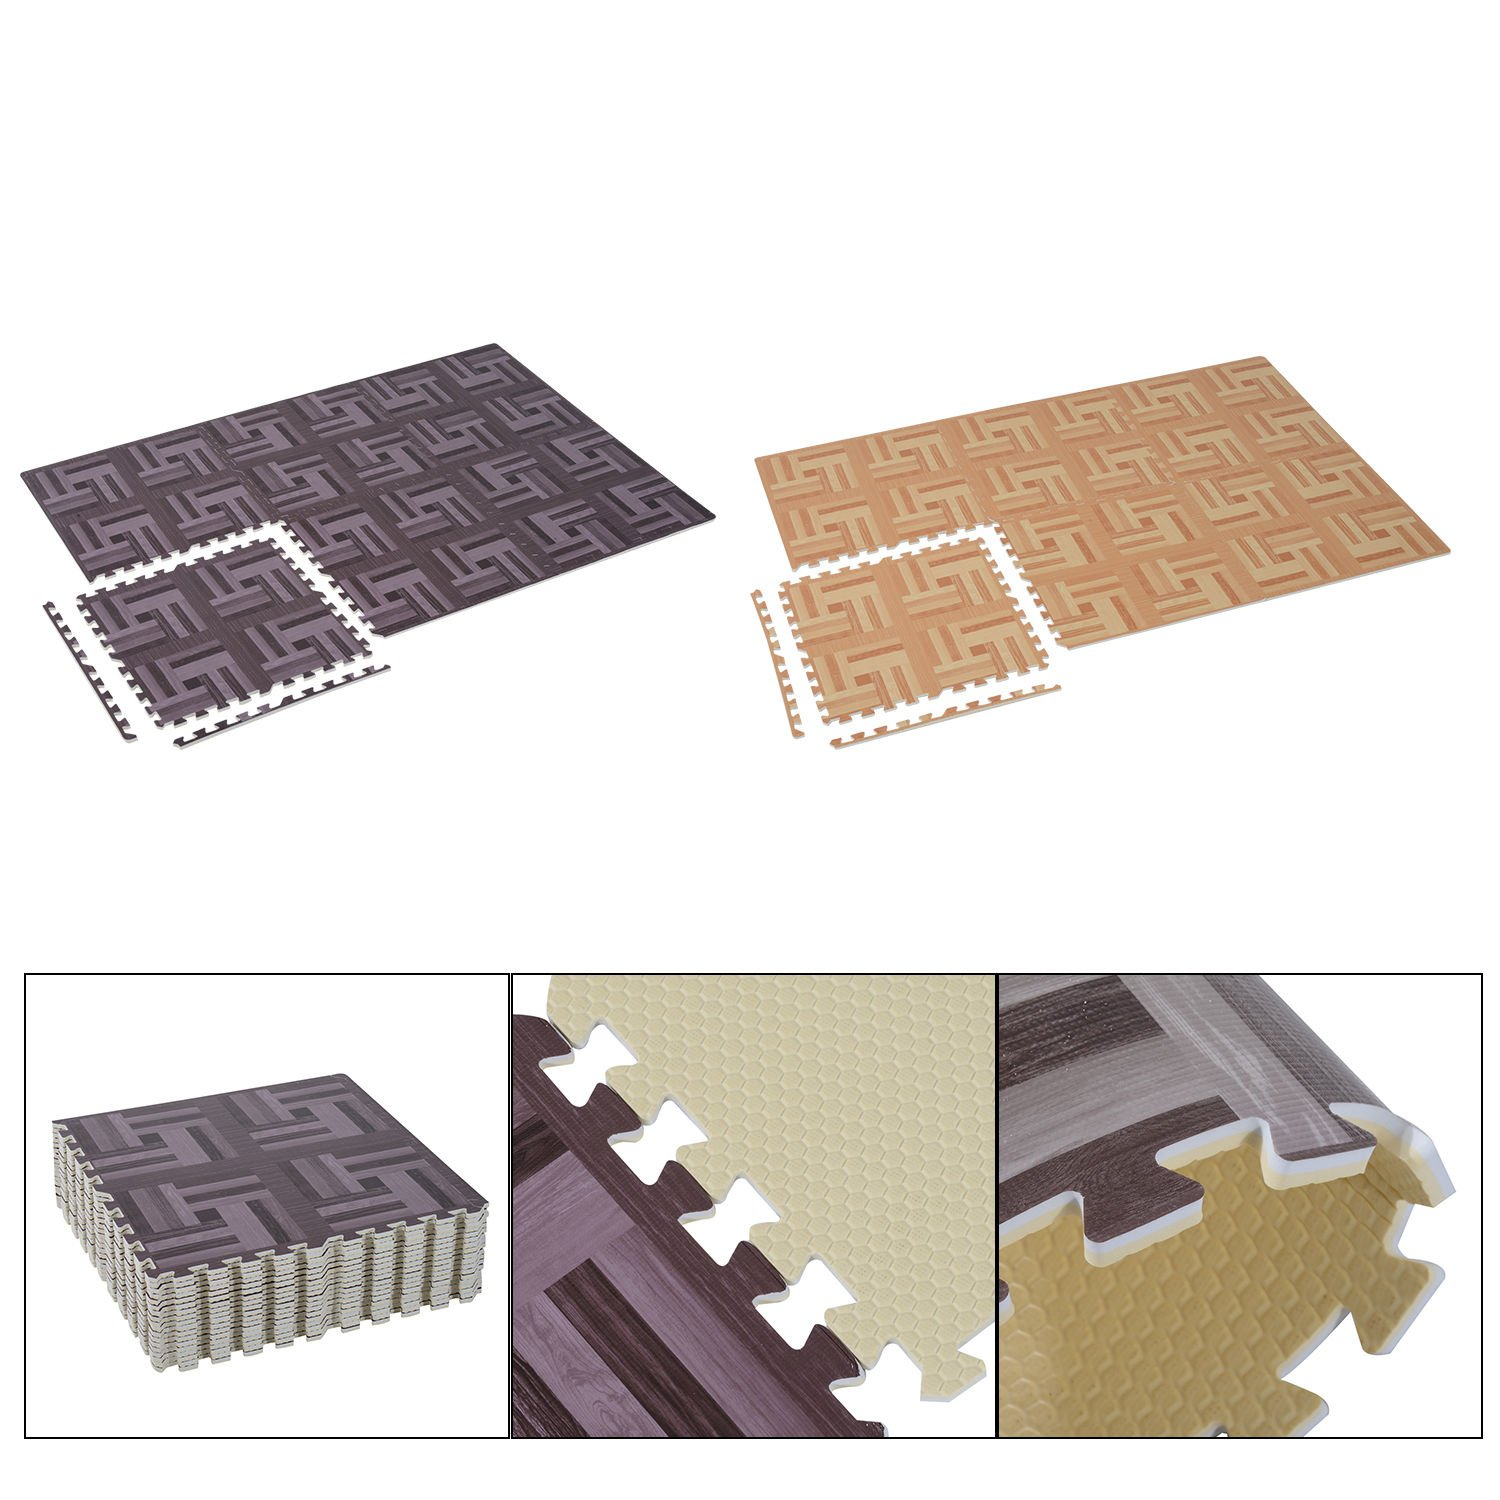 Generic DYHP-A10-CODE-4546-CLASS-8-- Gym Mats Tiles Work Gym Wood Grain Interlocking or Puzz EVA Foam locki Floor Puzzle rain In --NV_1008004546-CXL-US10